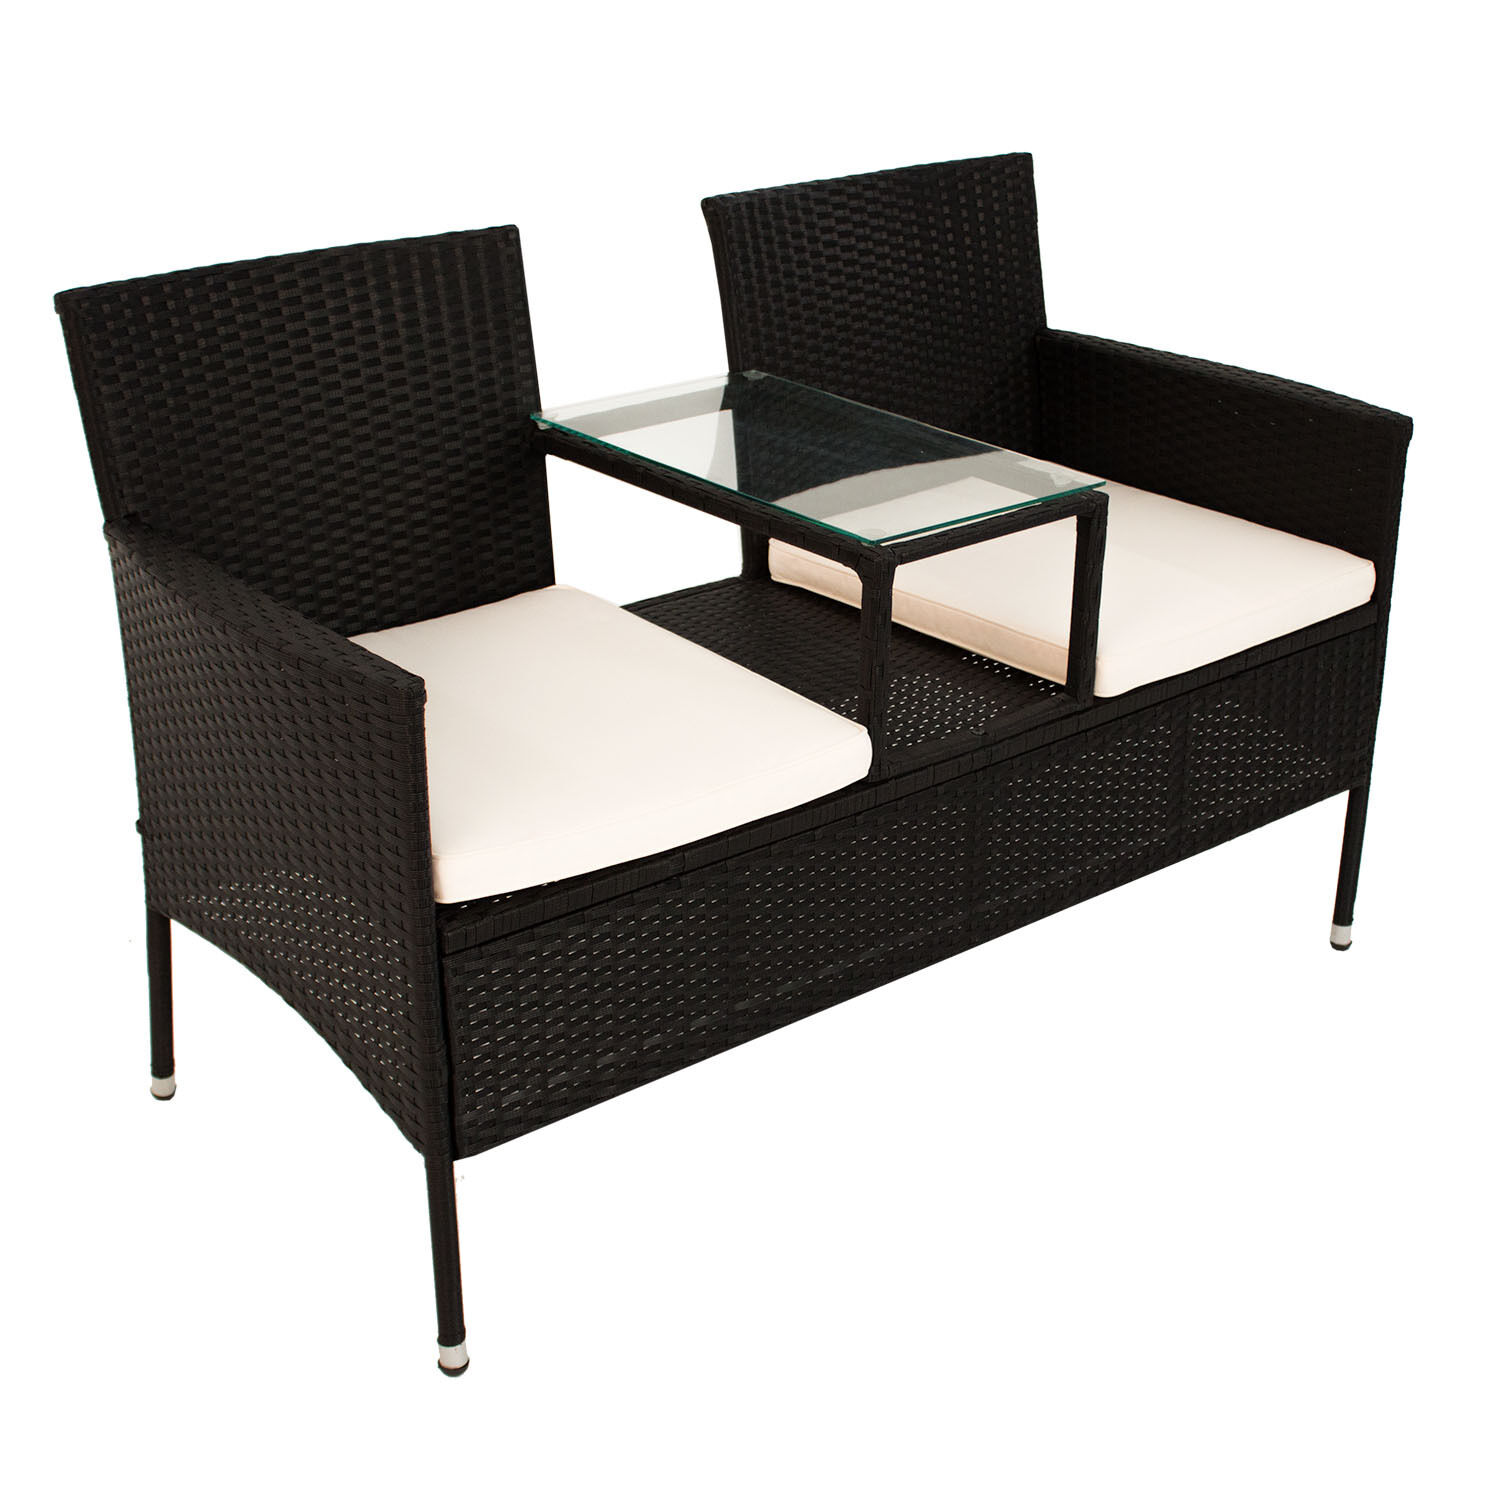 polyrattan gartenm bel gartenbank sitzbank mit tisch. Black Bedroom Furniture Sets. Home Design Ideas